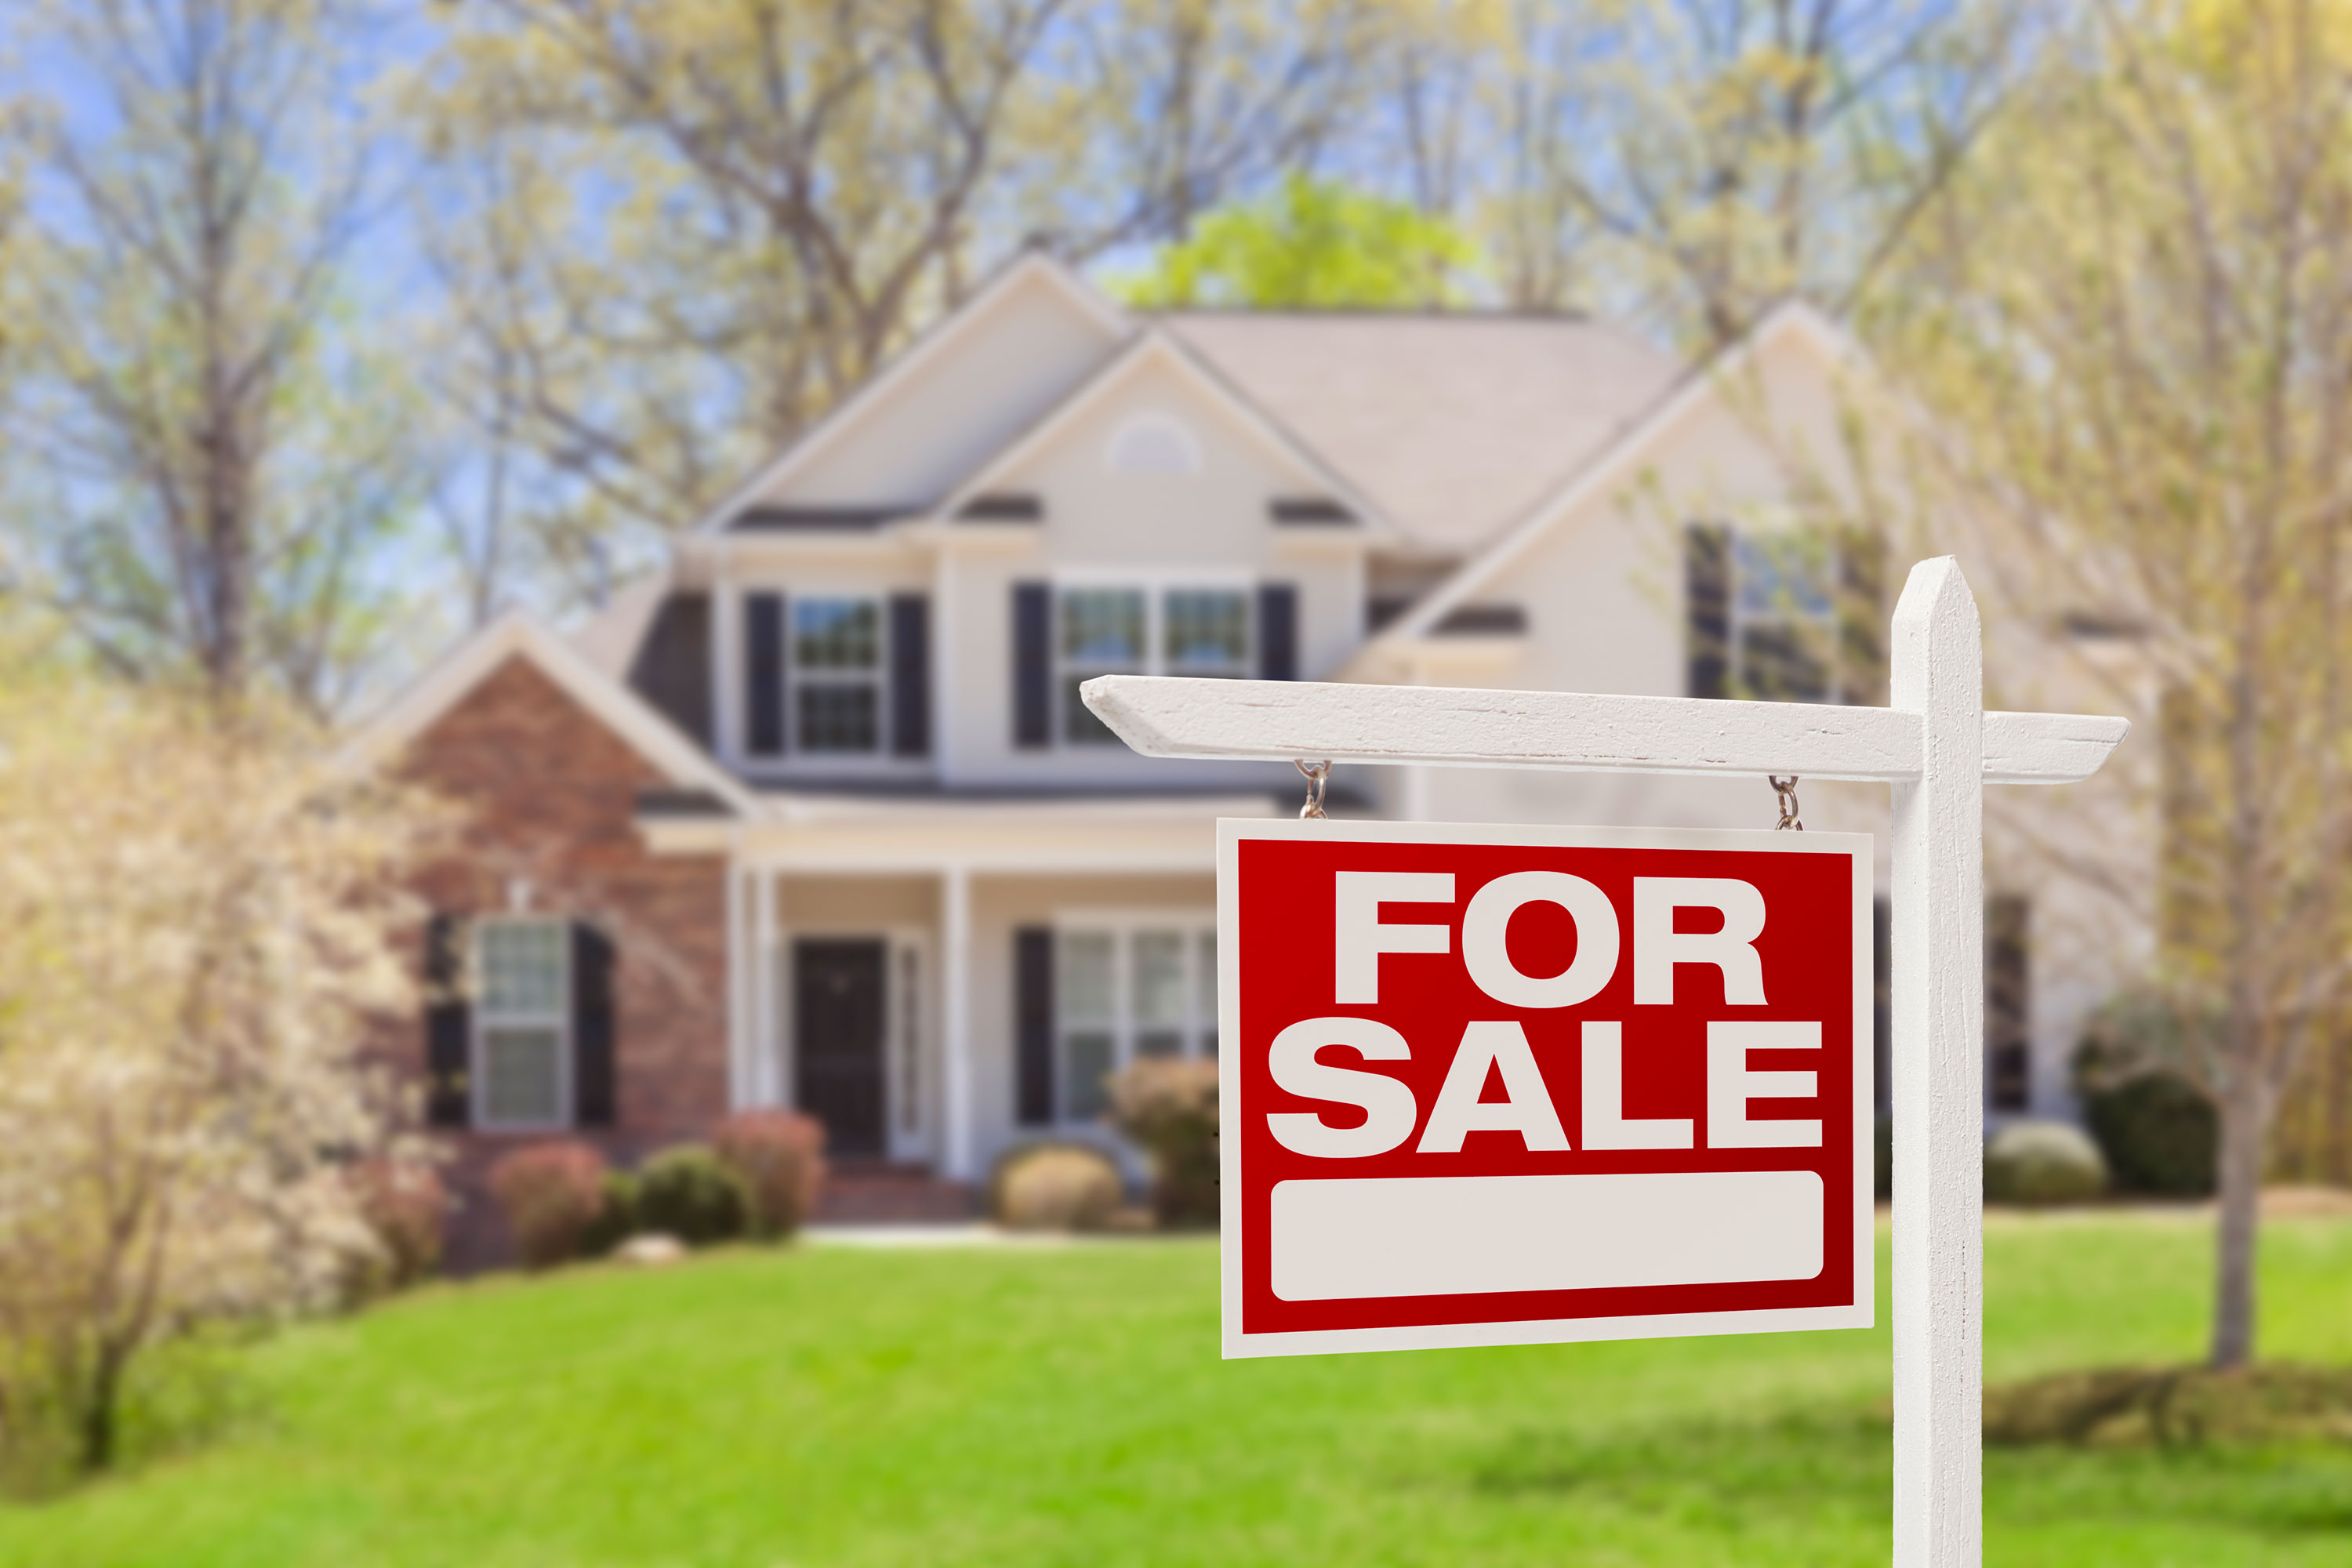 2019-03-28-blog-when-to-list-house-for-sale